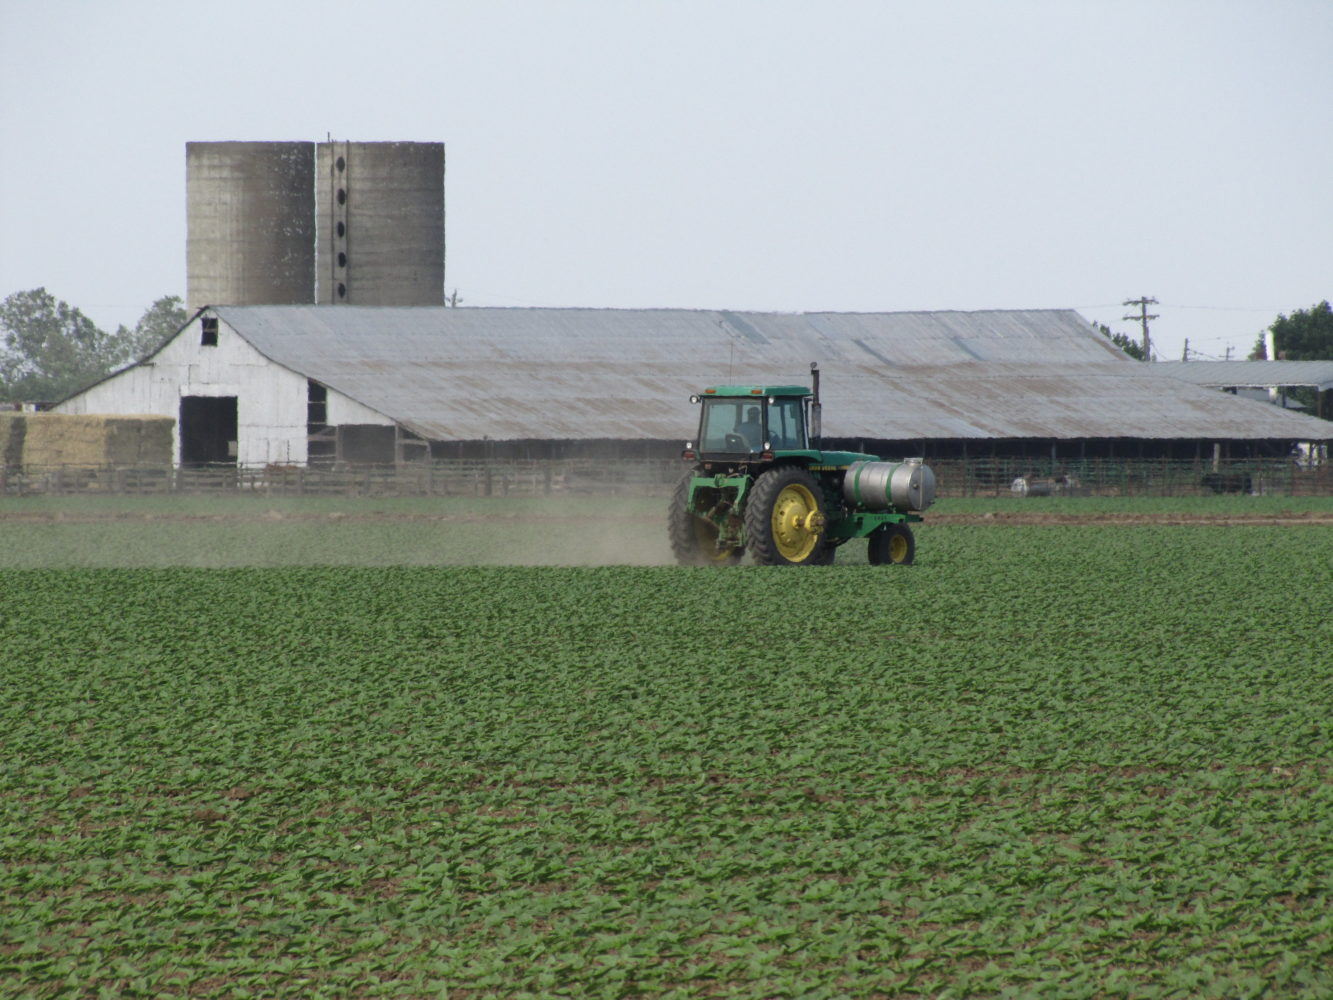 New research suggests financial stress for farms is here to stay